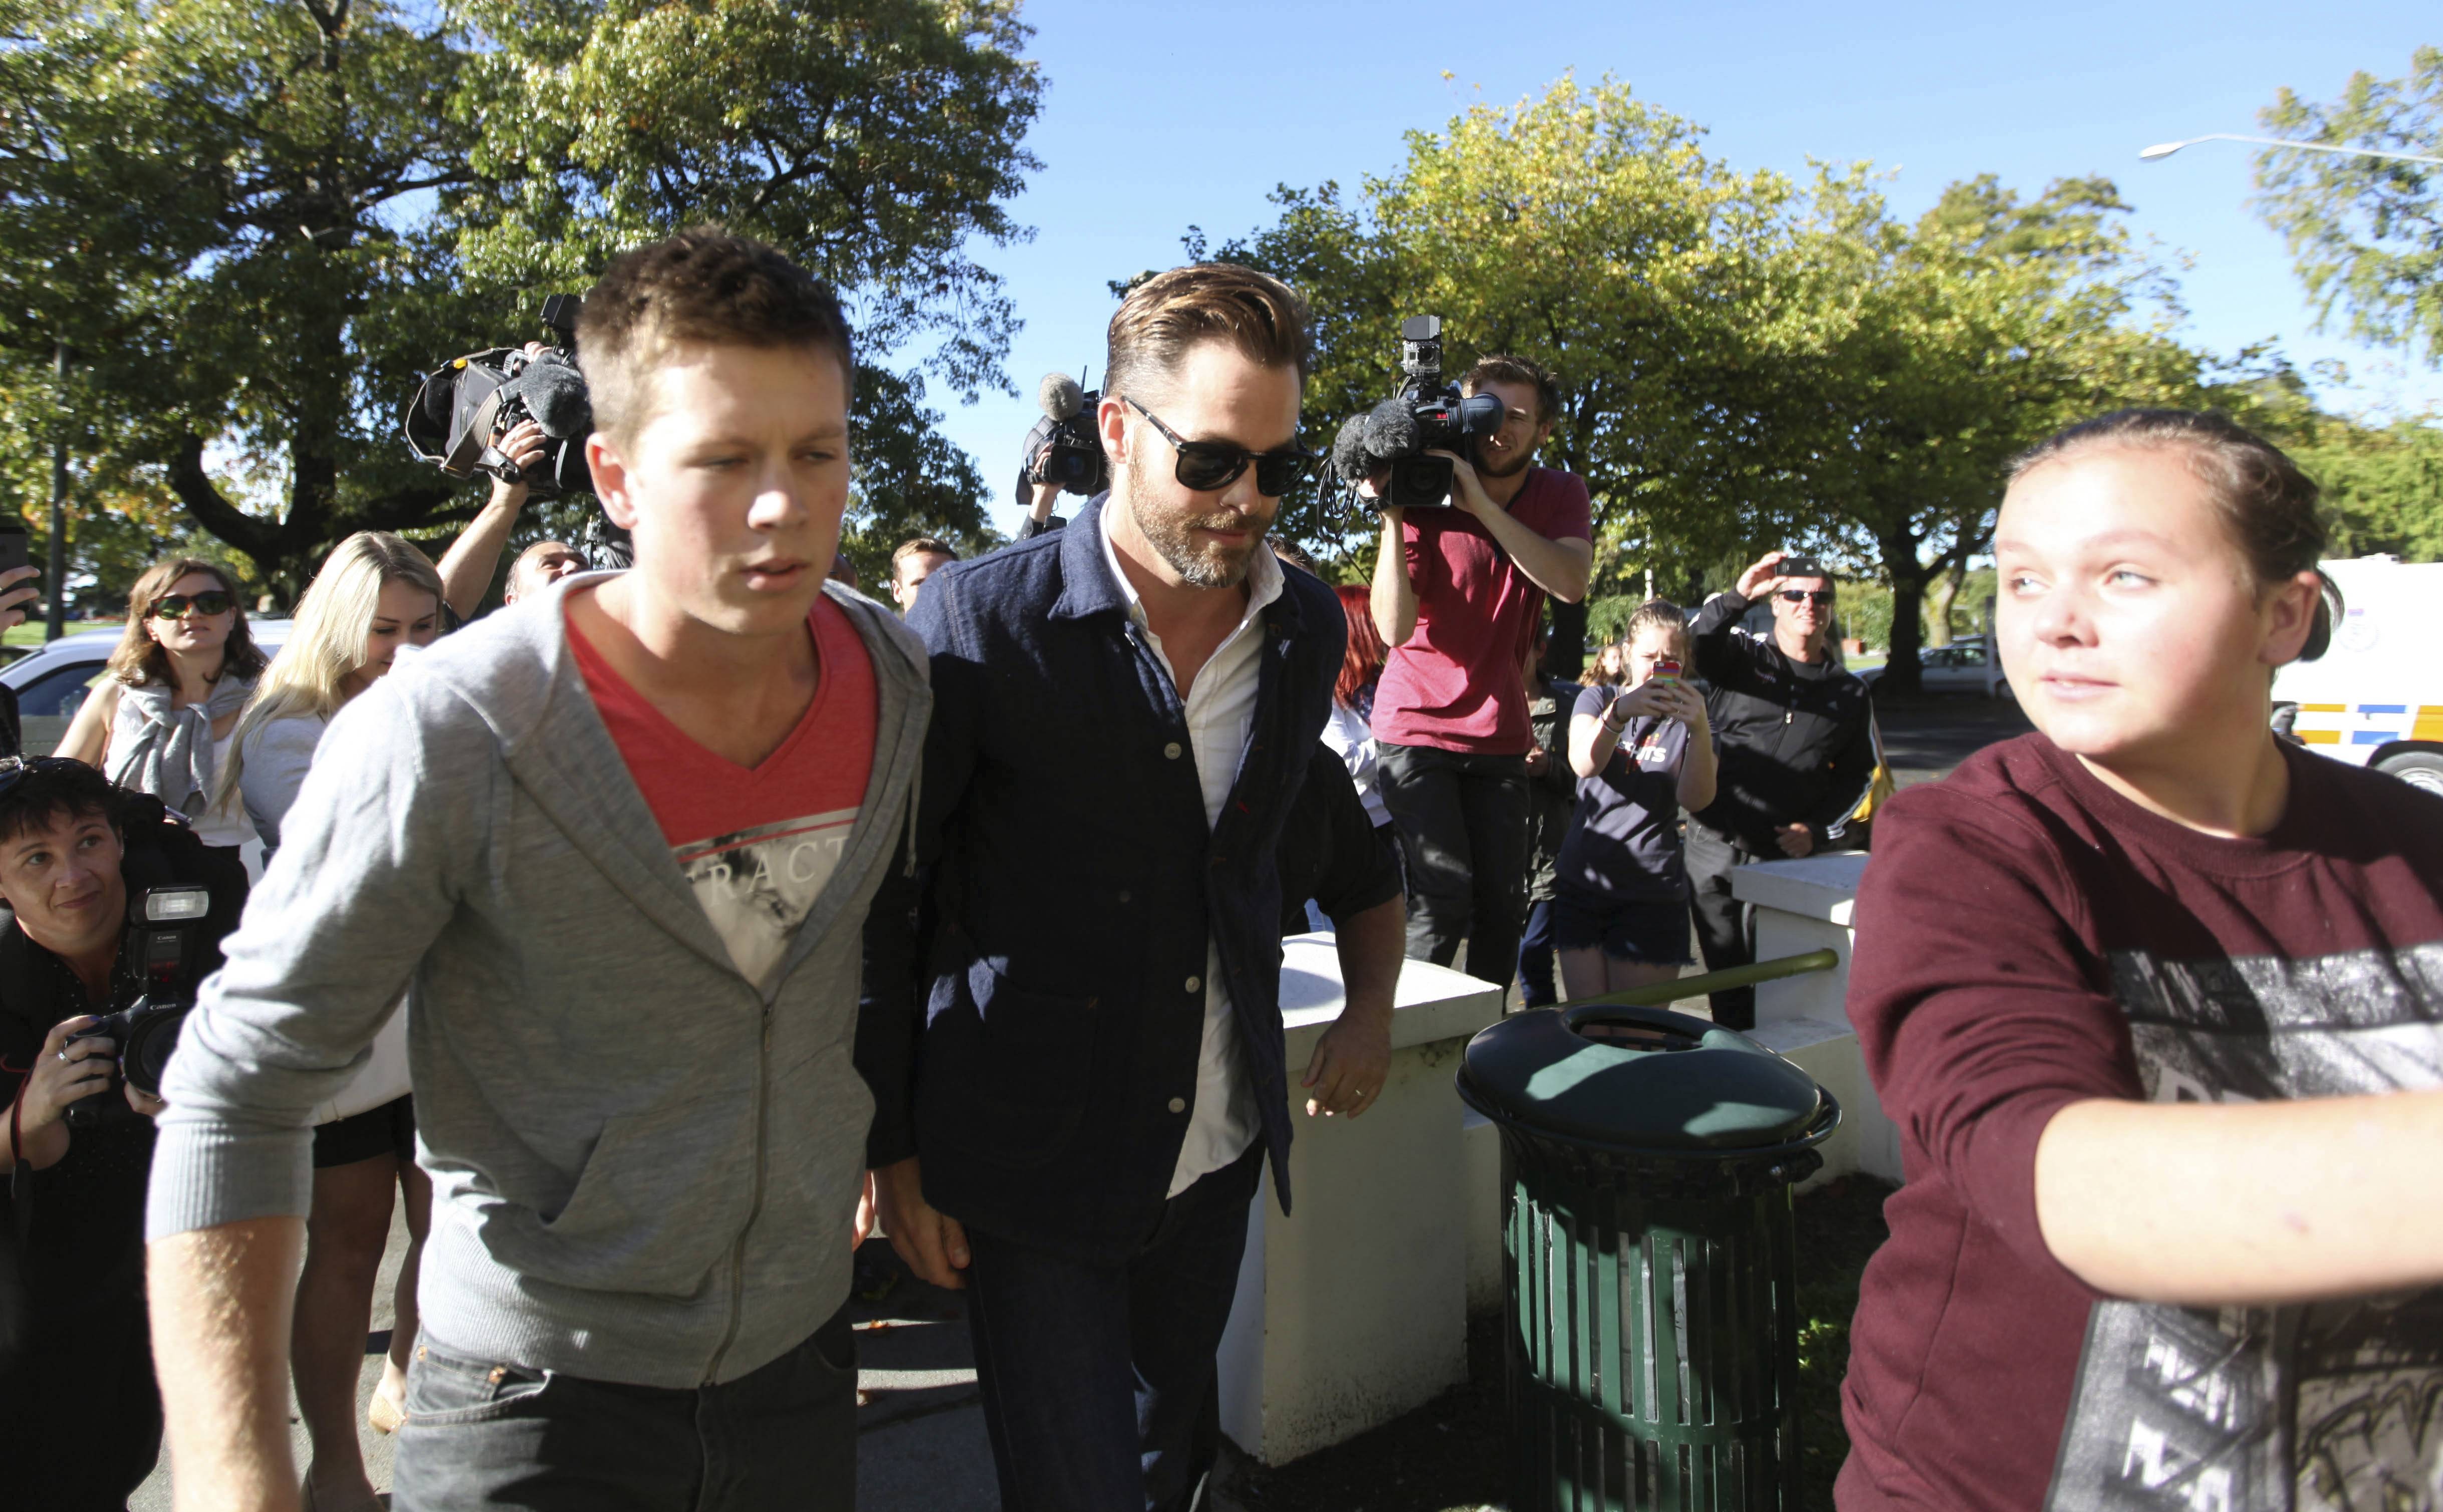 Actor Chris Pine, center, arrives at a courthouse in Ashburton, New Zealand, Monday. Pine pleaded guilty in the New Zealand court to drunken-driving charges.